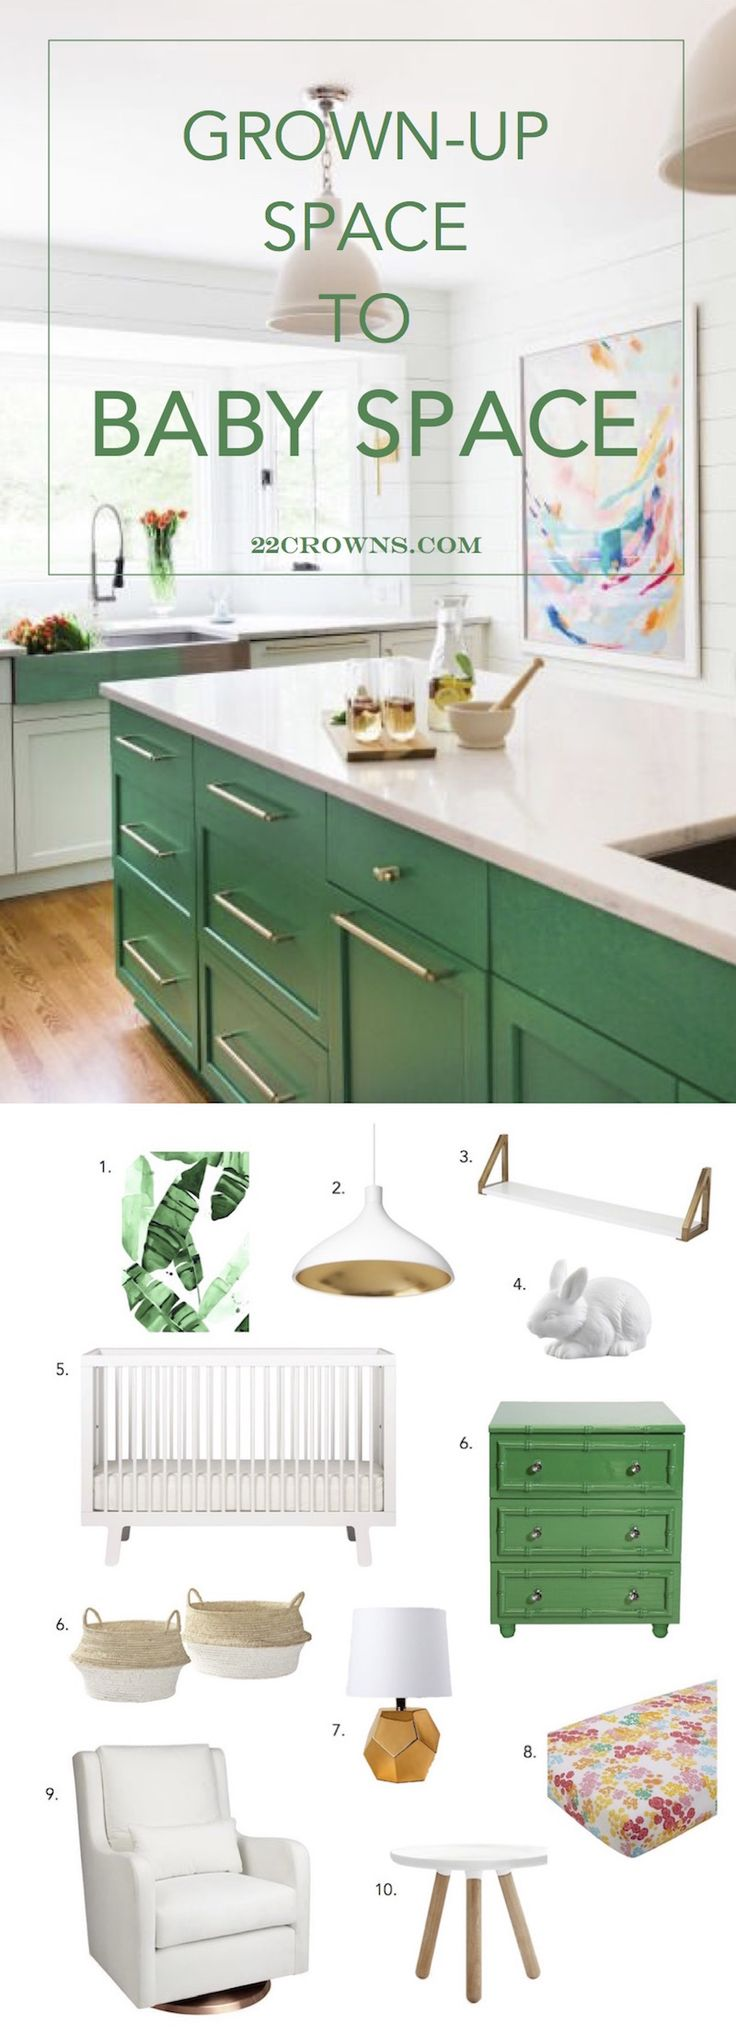 GROWN-UP SPACE TO BABY SPACE // Emerald Green Kitchen - non-toxic crib, eco-friendly, emerald green, white, gold, nursery, banana leaf, modern nursery, land of nod